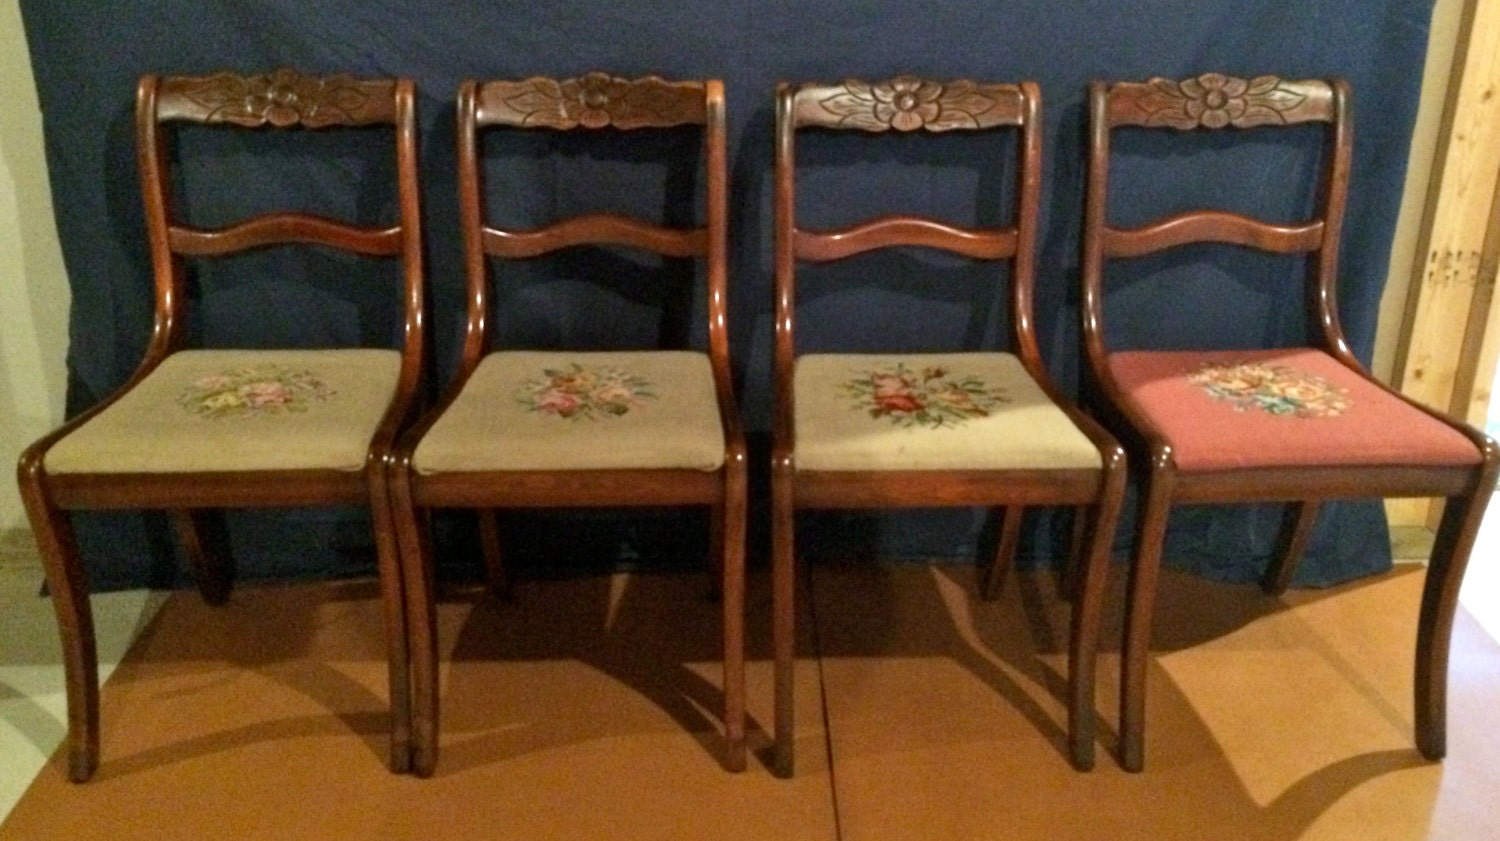 Duncan phyfe rose back chairs -  Zoom